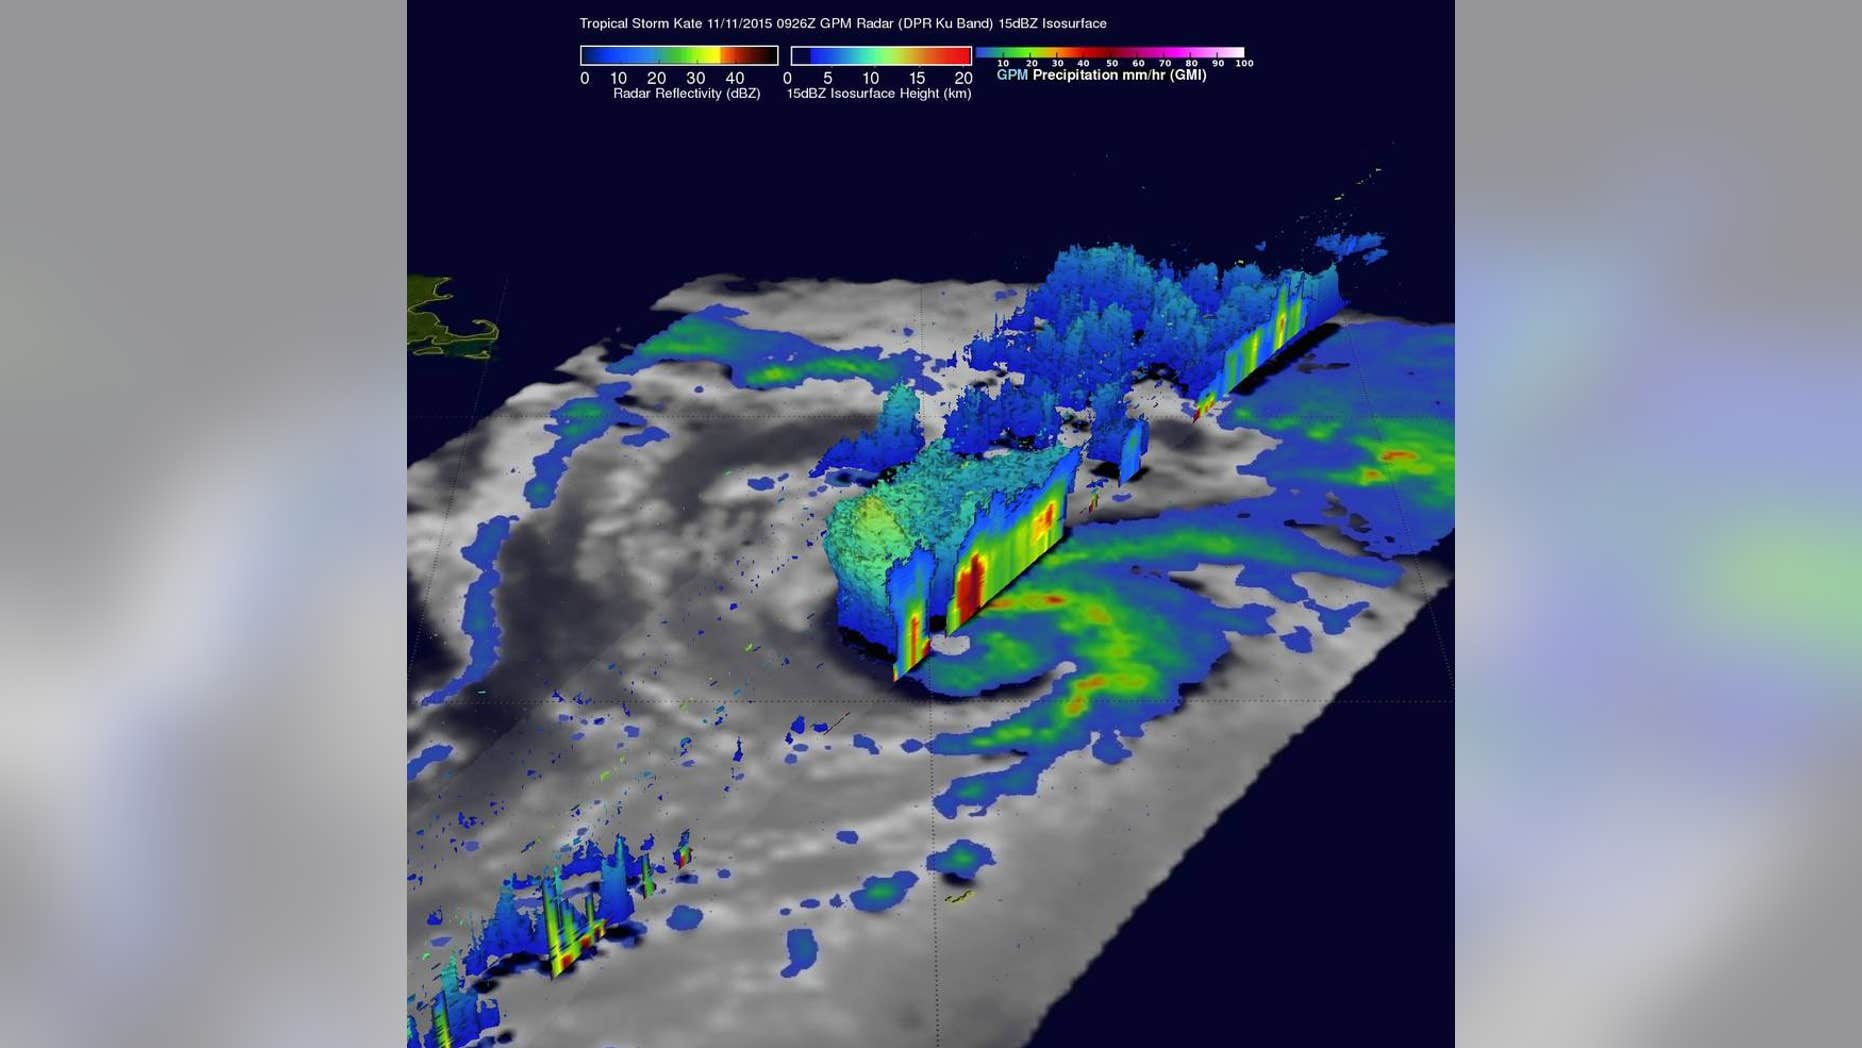 On Nov. 11, GPM found that intense storms within feeder bands there were dropping rain at a rate of over 80 mm (3.1 inches) per hour. A 3-D cross section by GPM's Radar (DPR Ku Band) through Kate's weak eye shows intense storms swirling around the northern side of the tropical cyclone. (NASA/JAXA/SSAI, Hal Pierce)